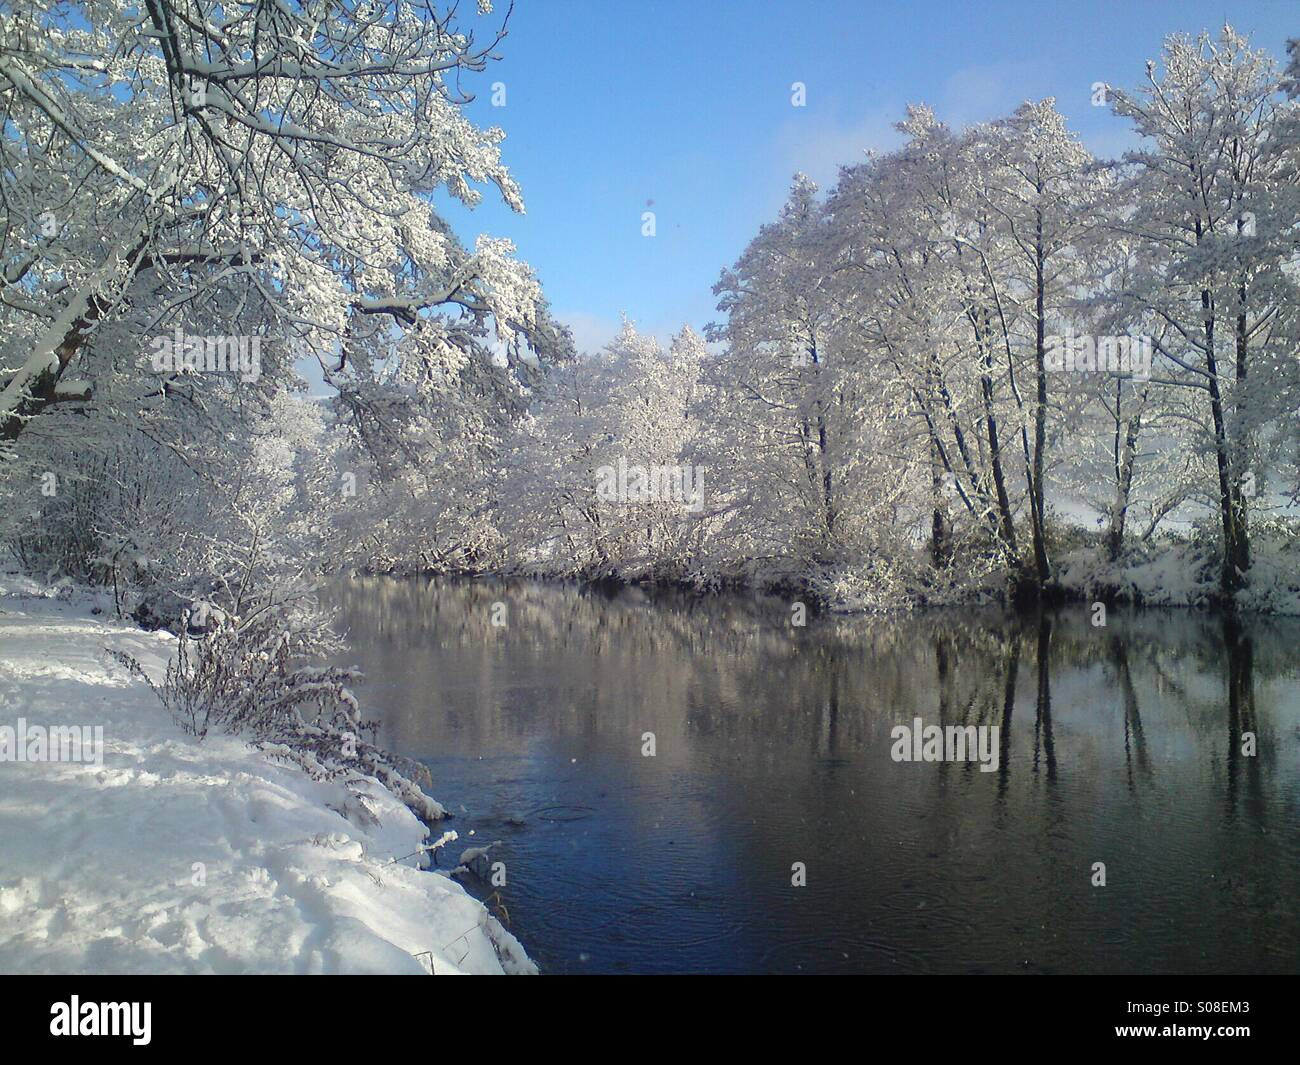 a-winters-morning-by-the-river-exe-S08EM